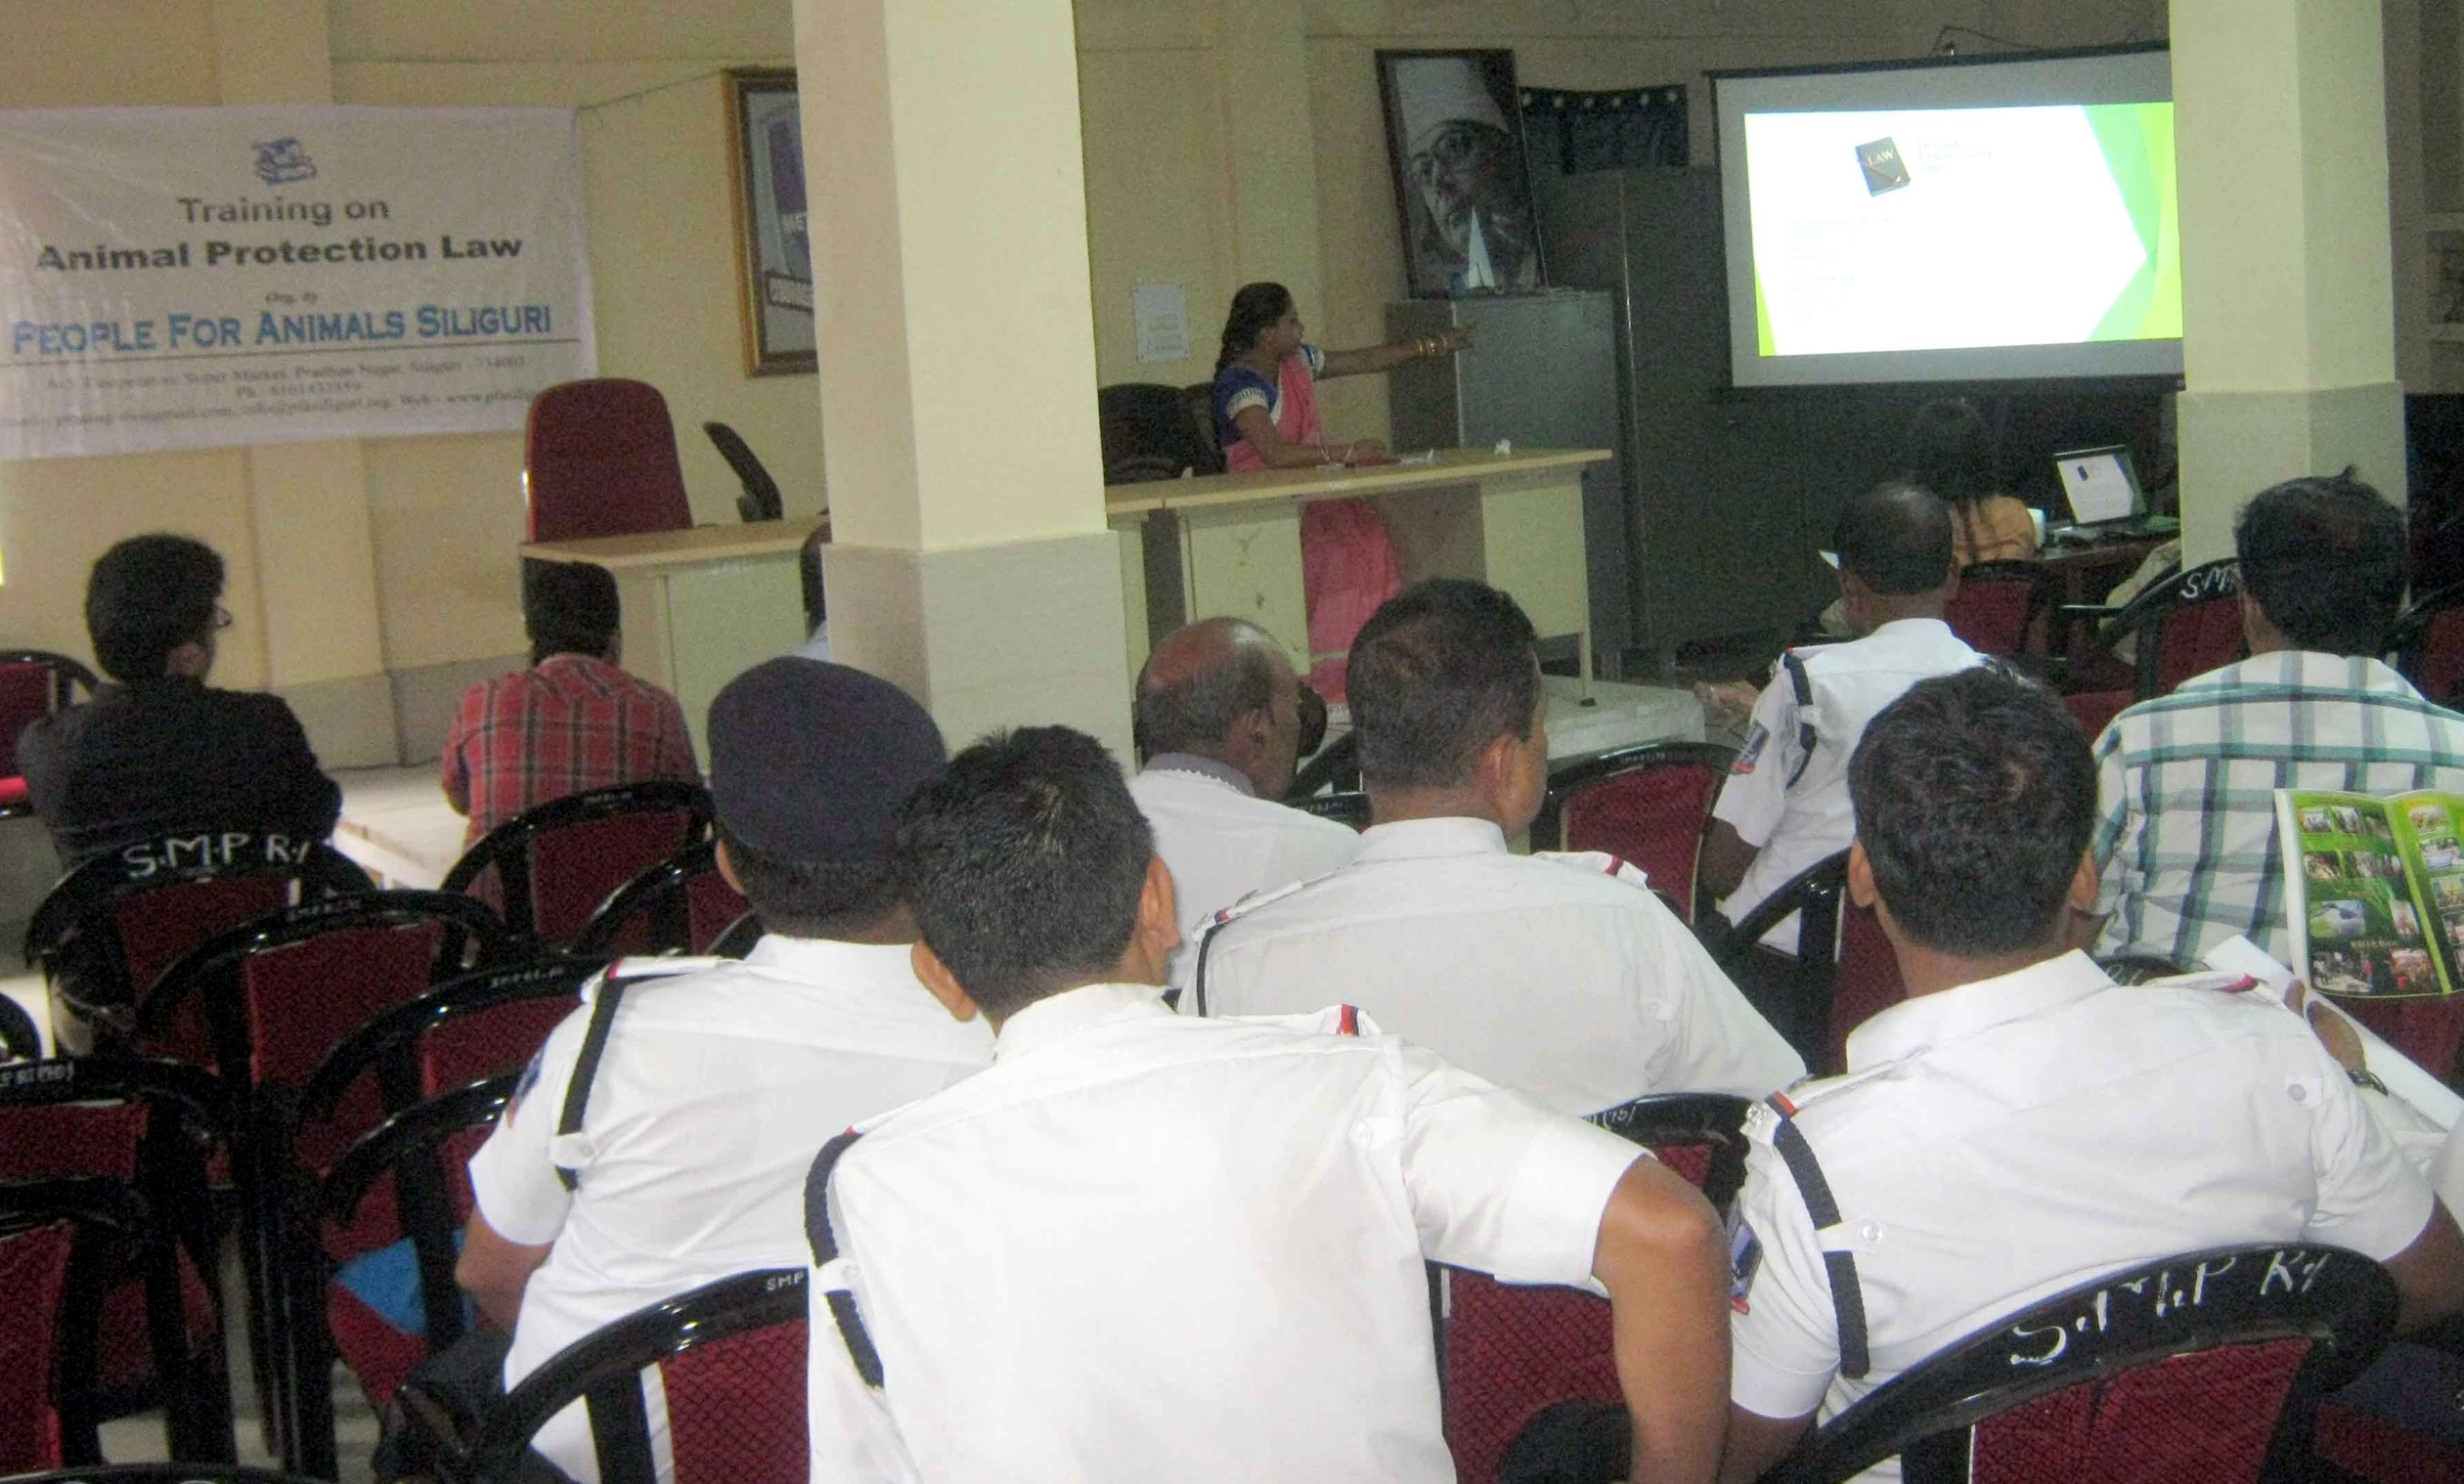 Animal protection law training for police